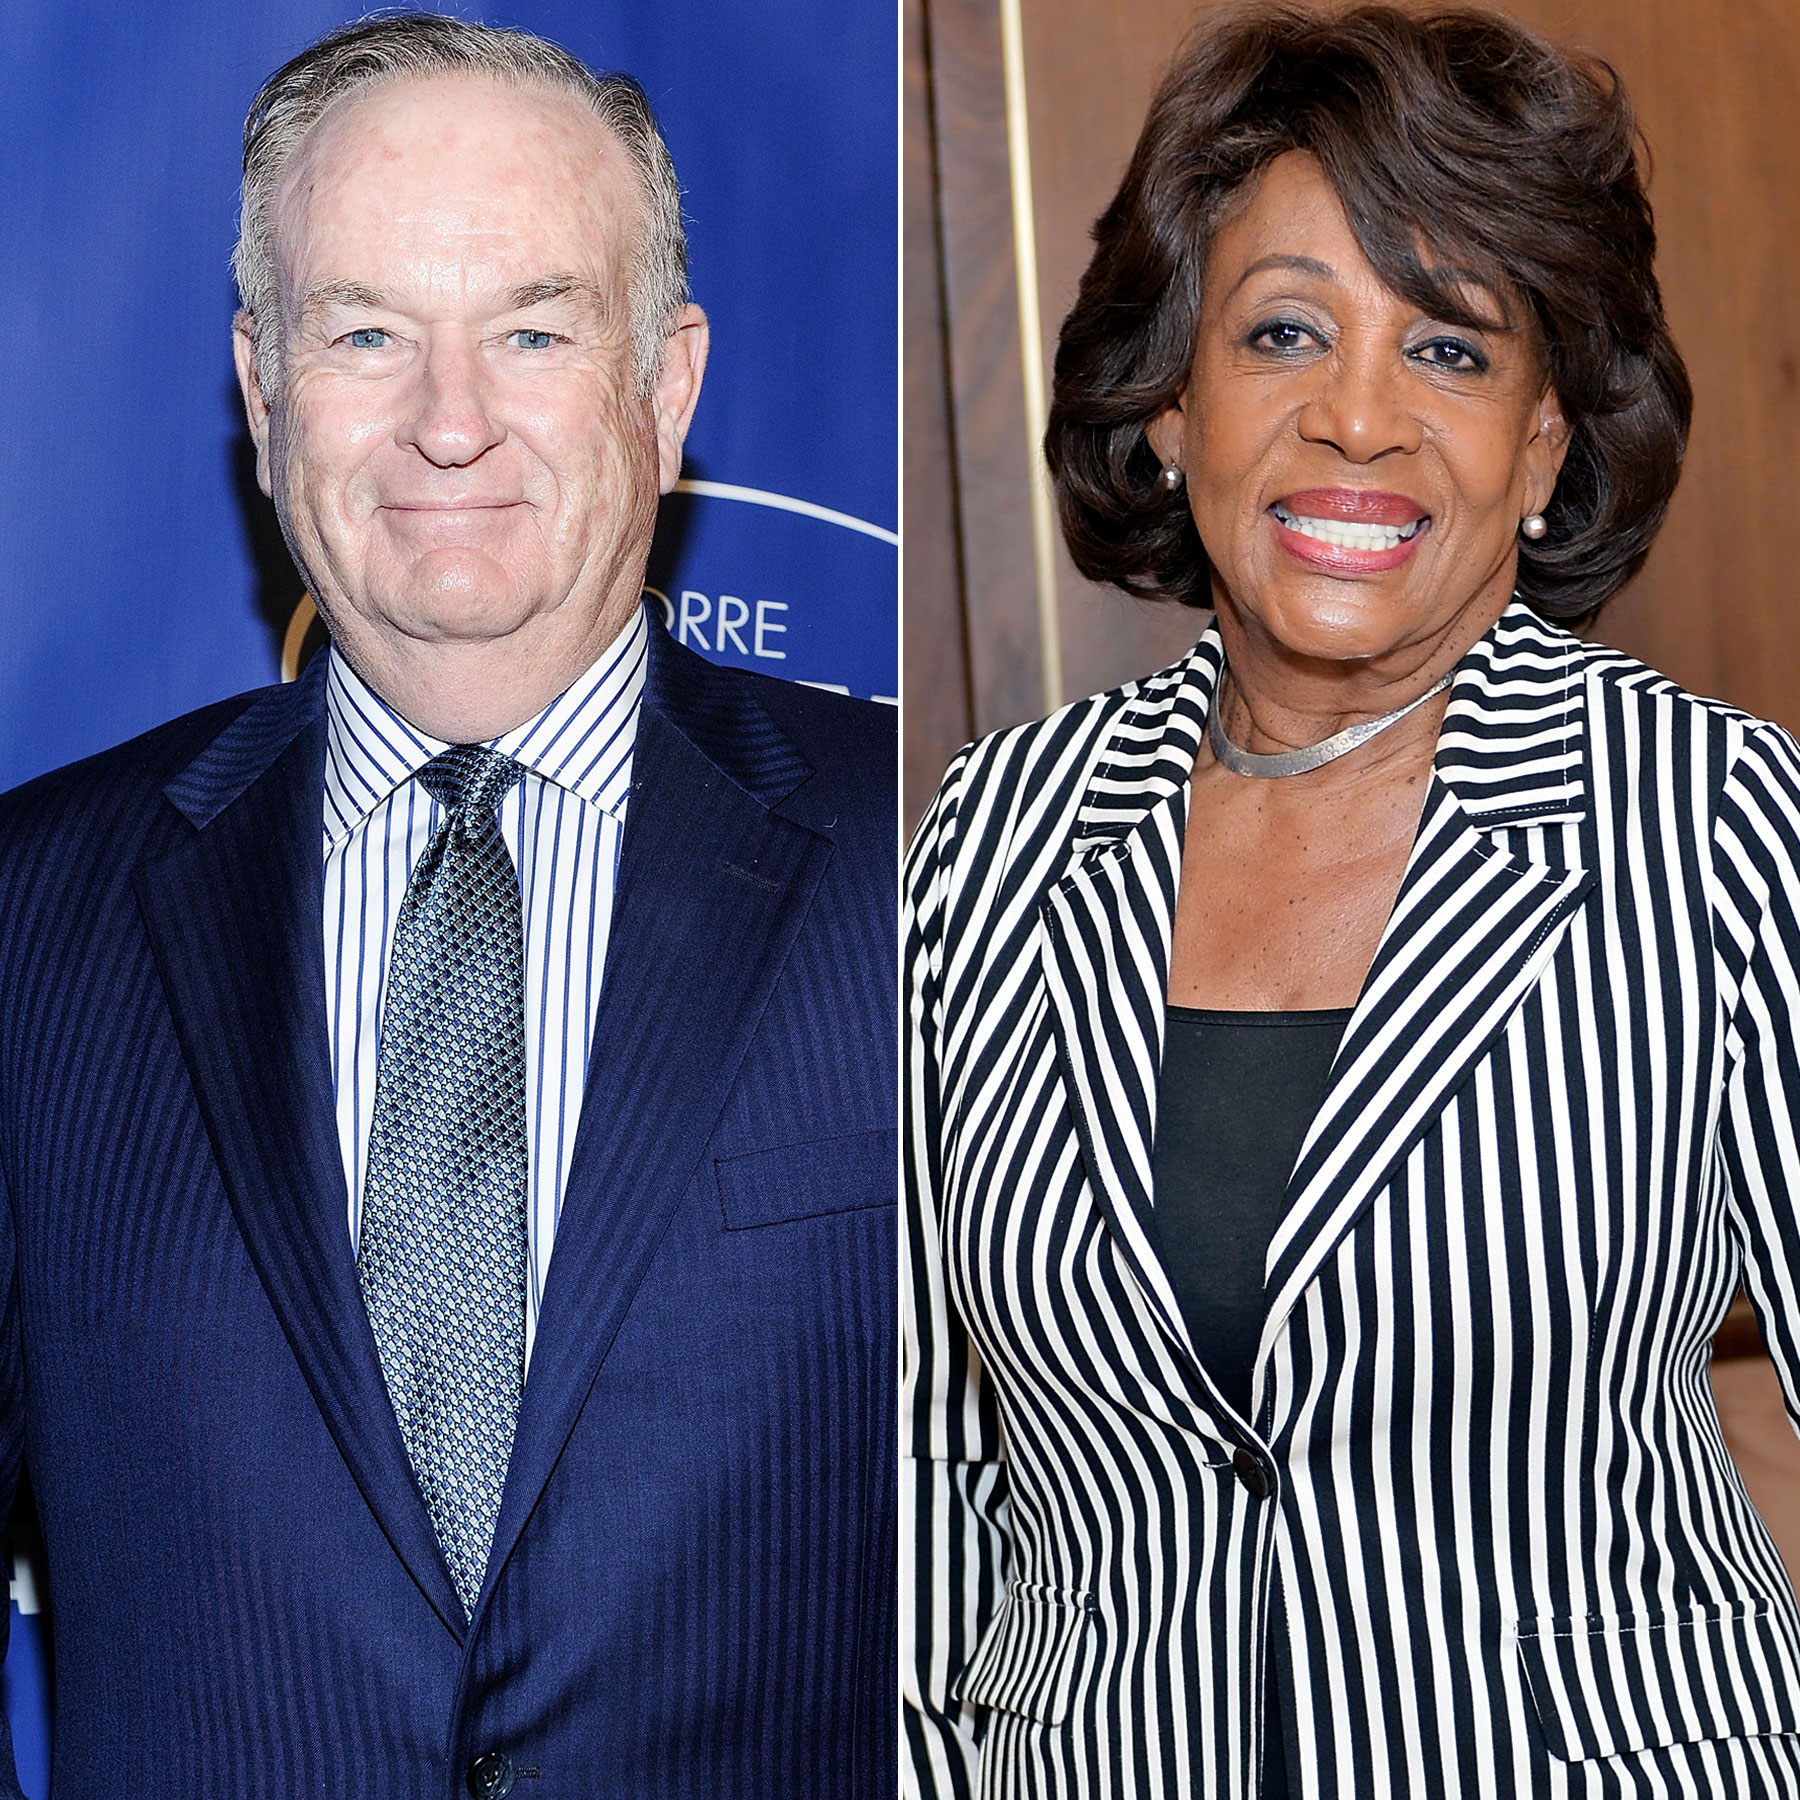 Bill O'Reilly and Maxine Waters